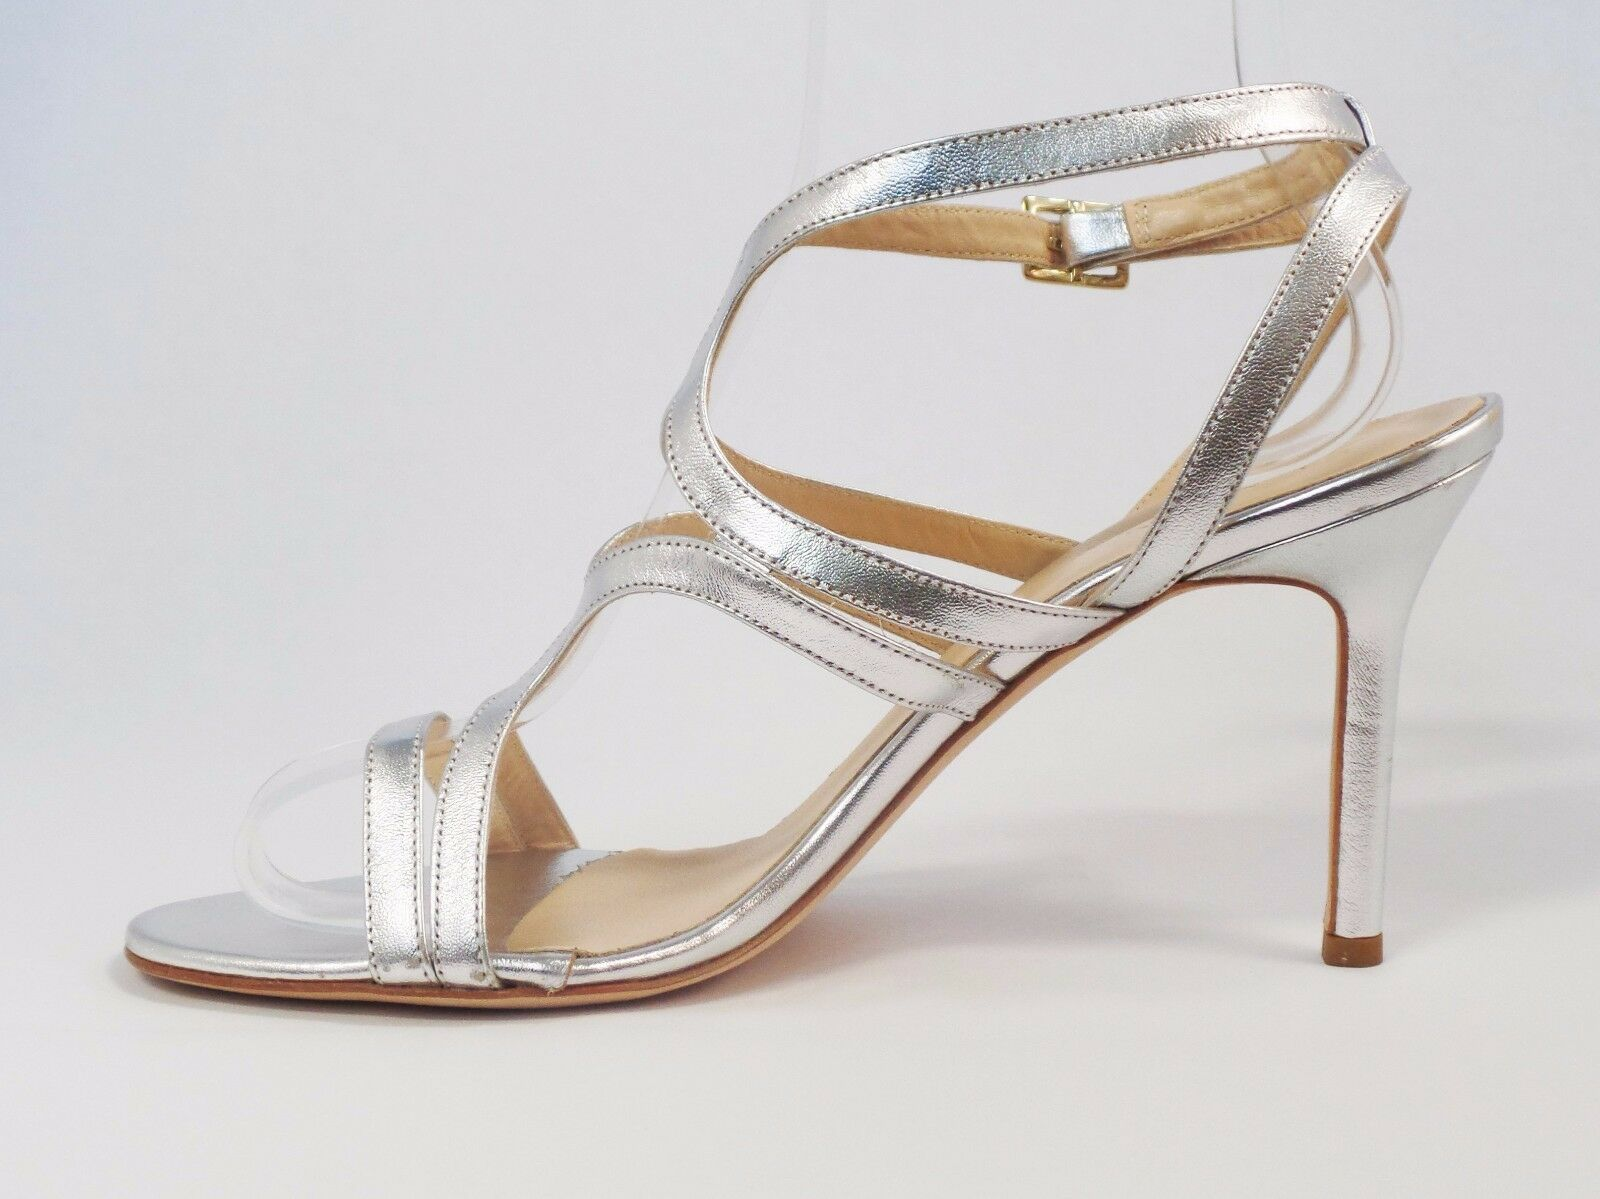 NWB ST JOHN Silber EMILY SANDALS NAPPA LEATHER HEELS 9.5 M